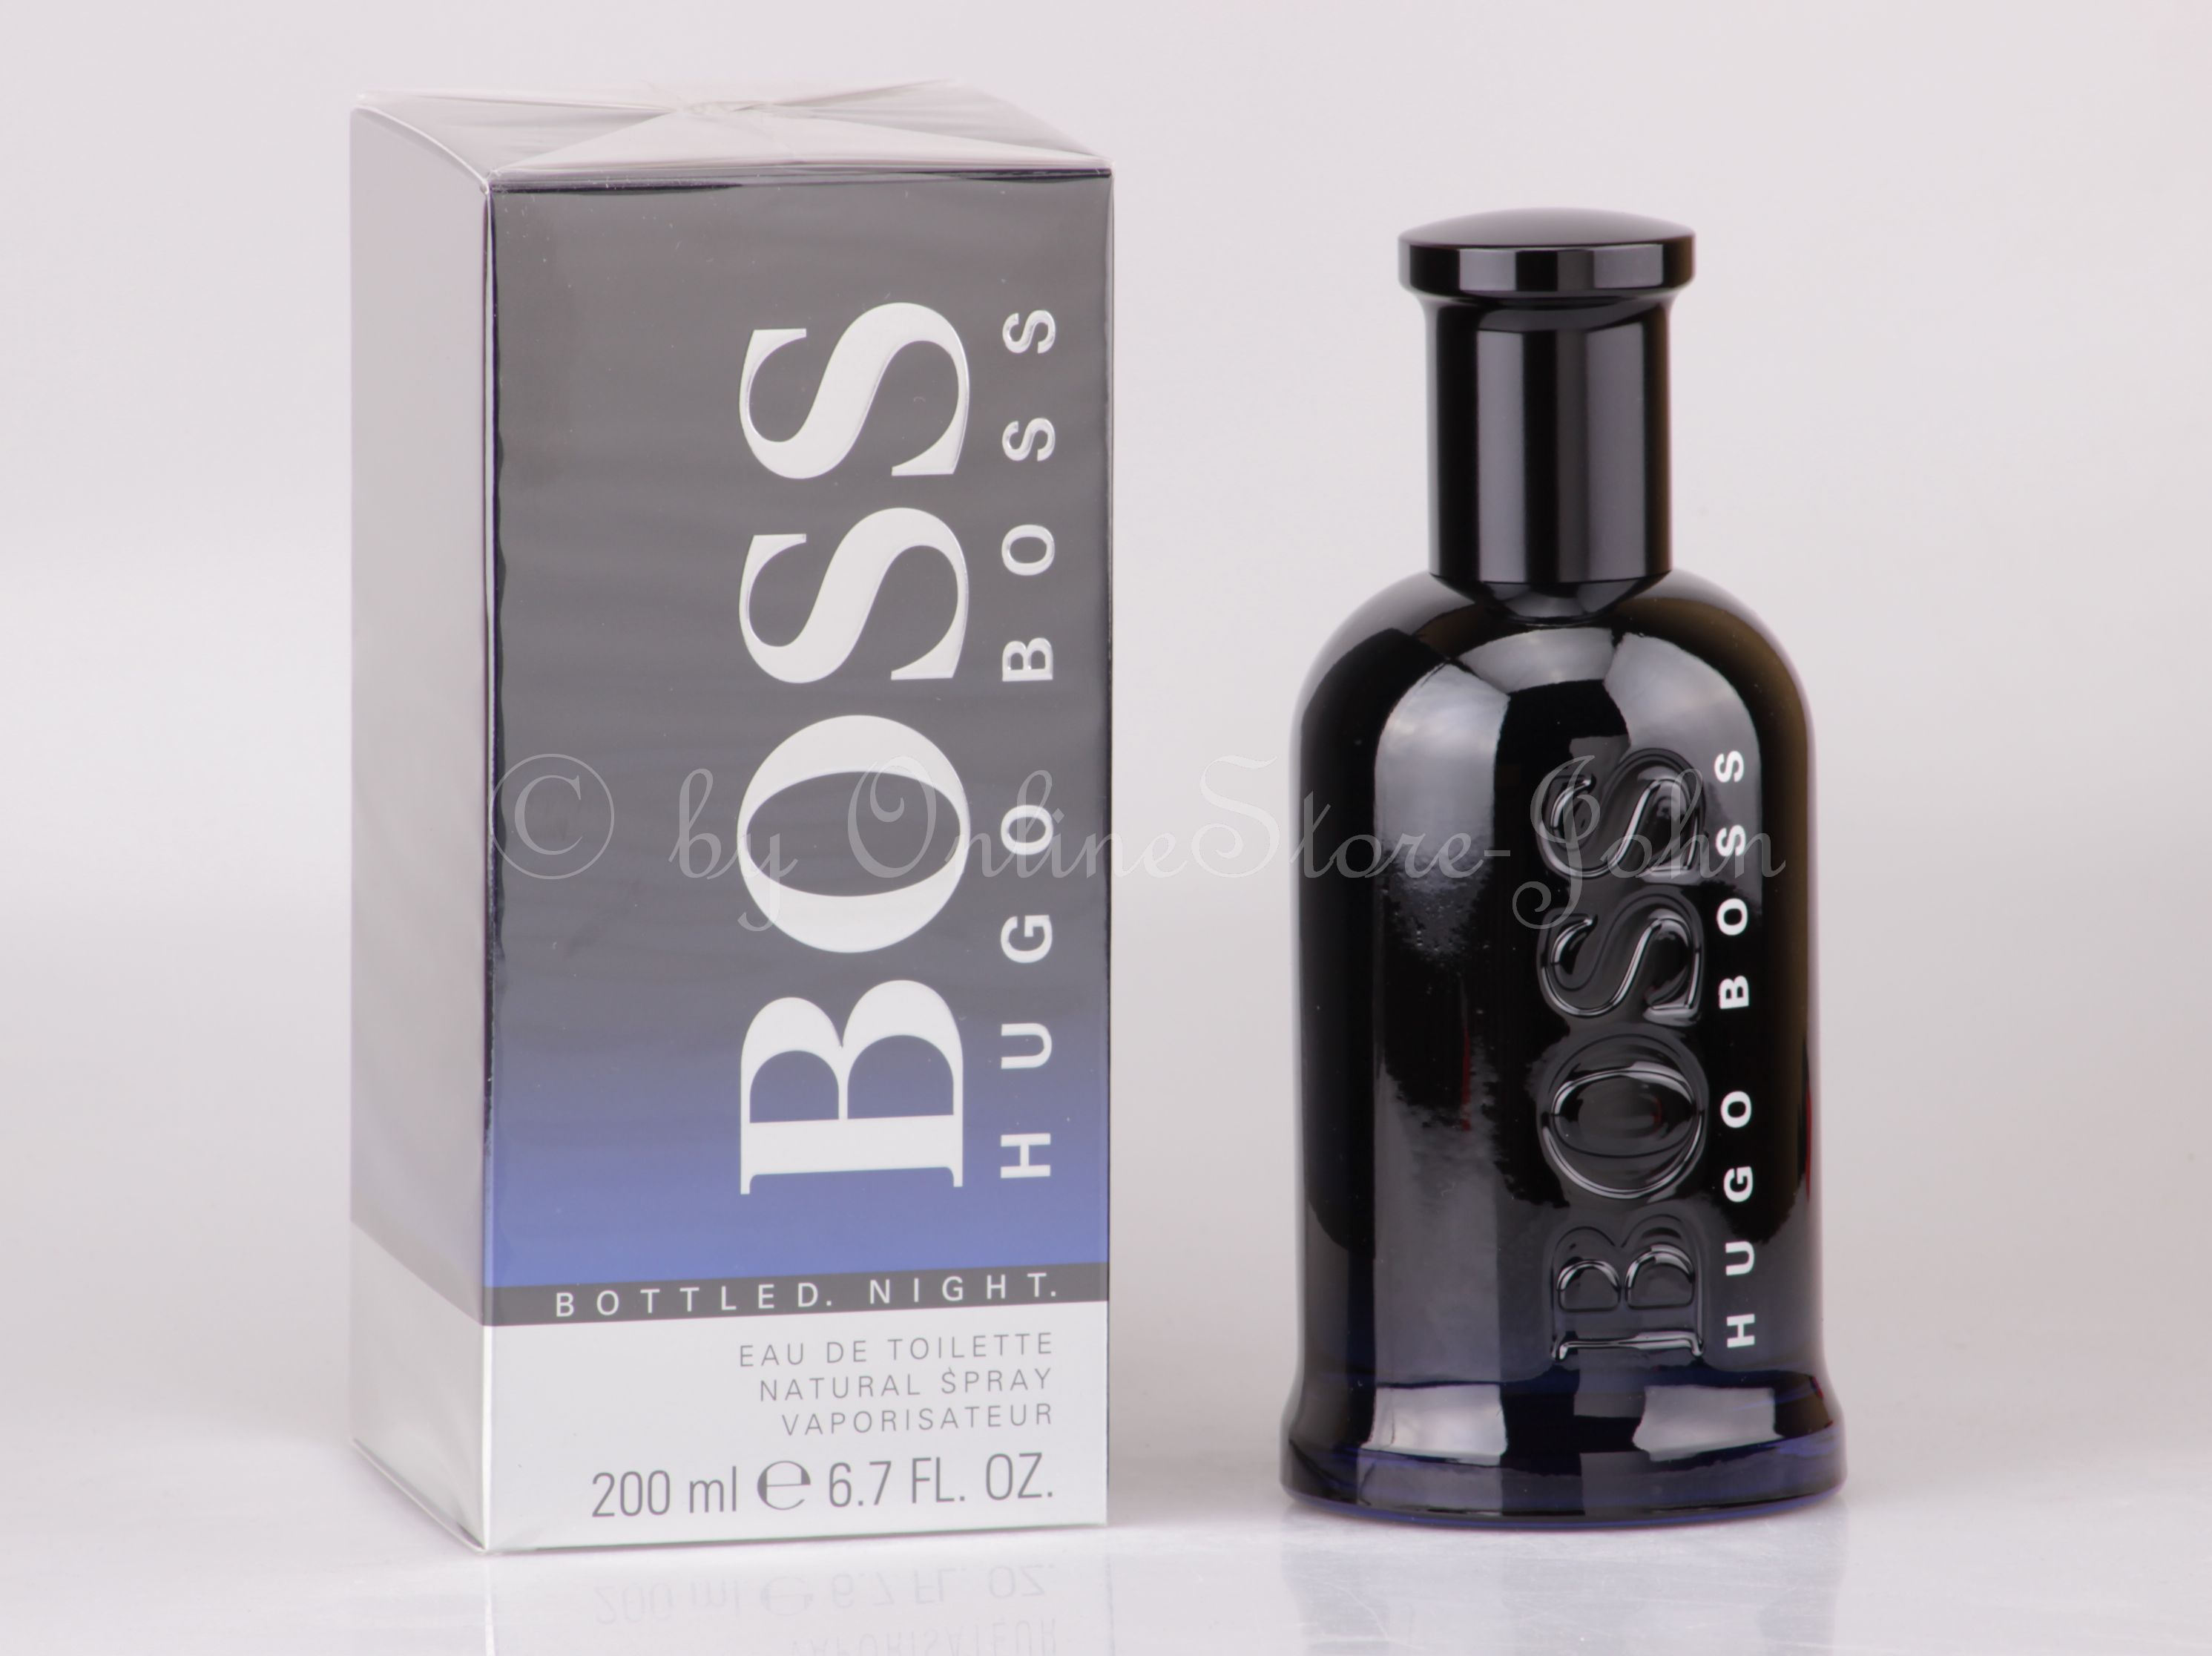 hugo boss mens perfume 200ml ladies perfume. Black Bedroom Furniture Sets. Home Design Ideas